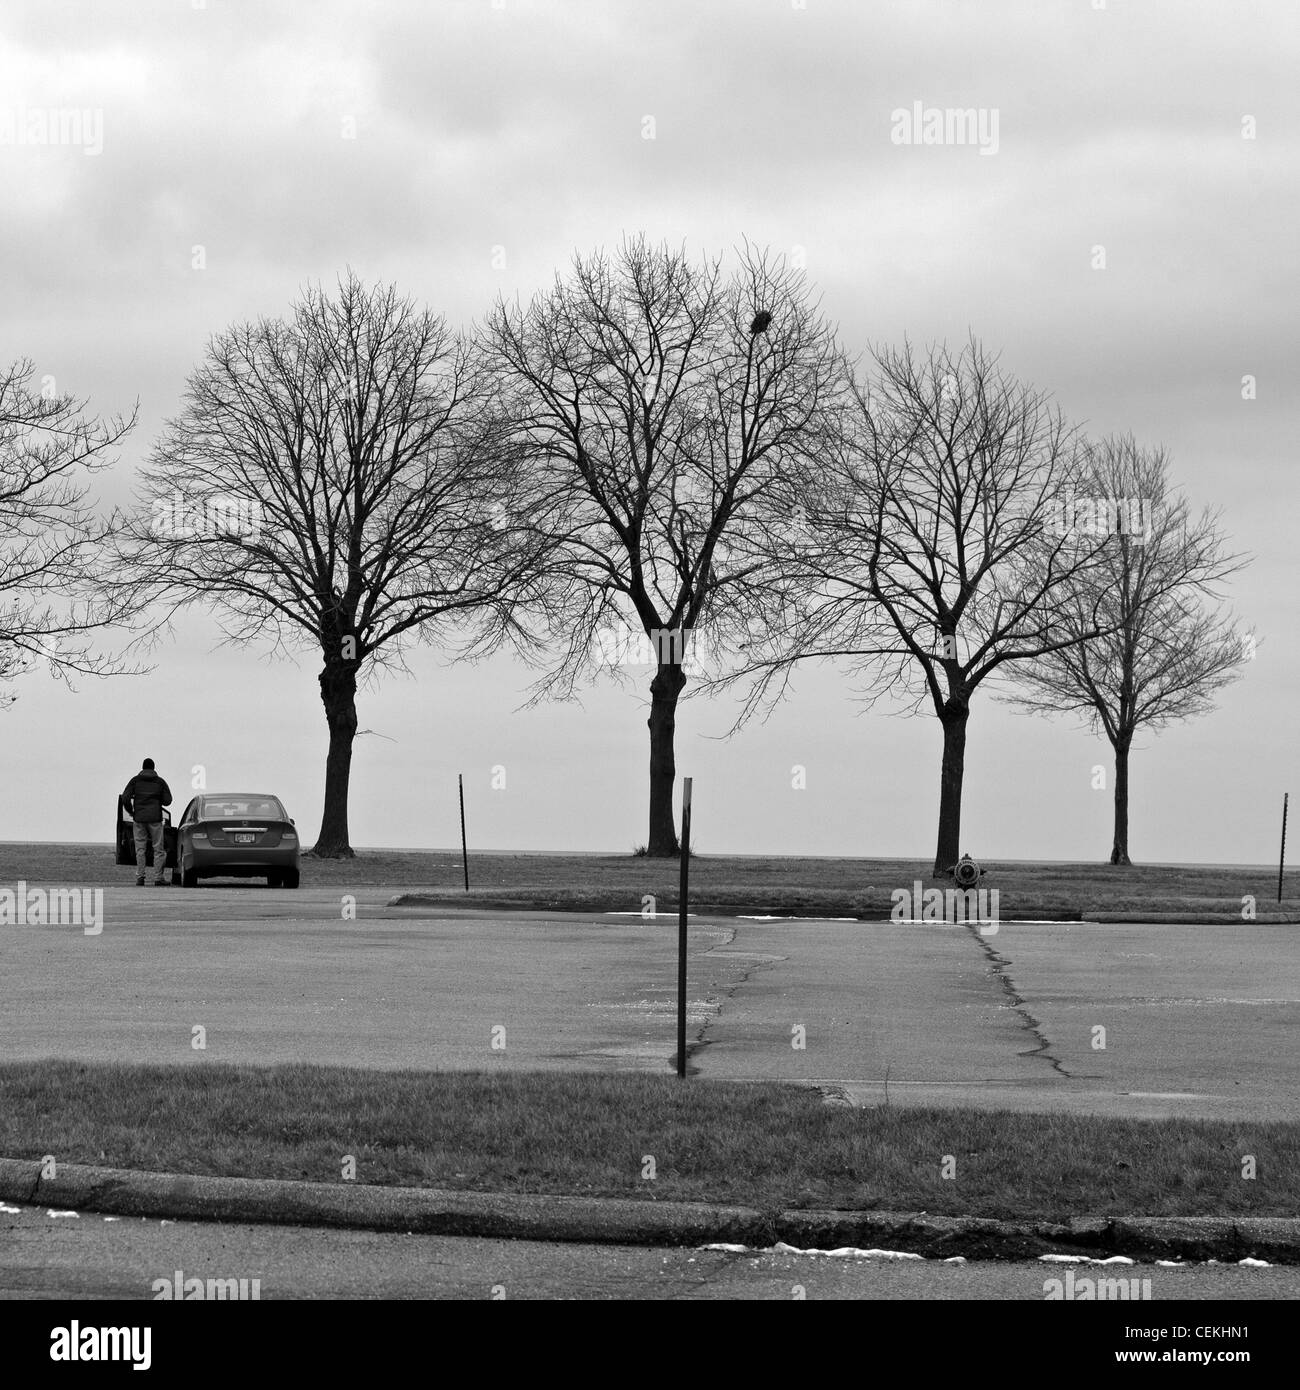 A man and his car are the only signs of life at Milwaukee's lakefront on an overcast afternoon. - Stock Image